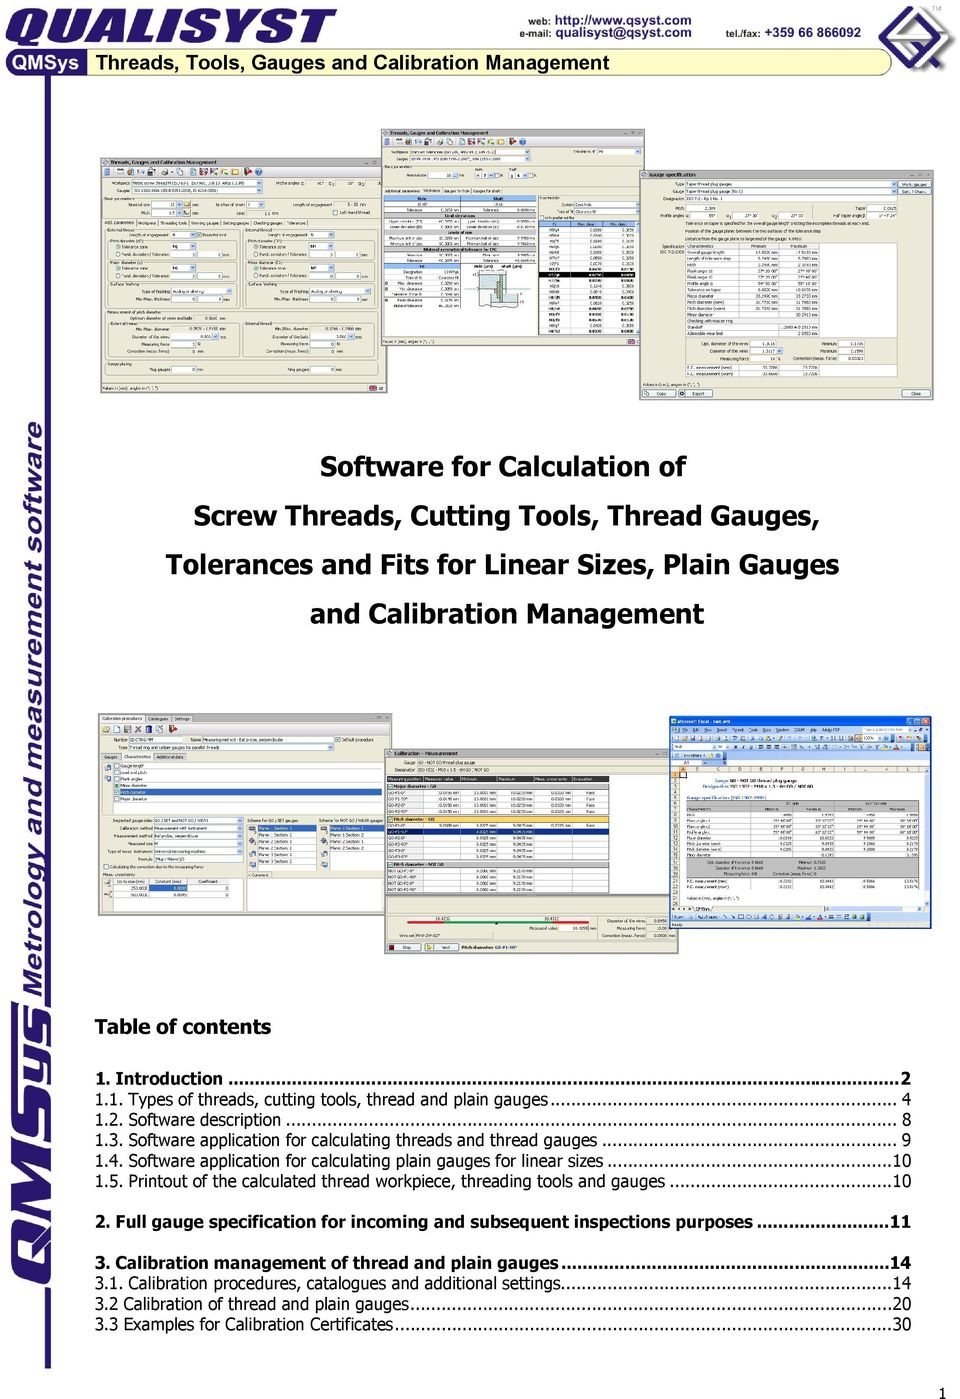 Software For Calculation Of Screw Threads Cutting Tools Thread Net American Wire Gauge 5 Printout The Calculated Workpiece Threading And Gauges